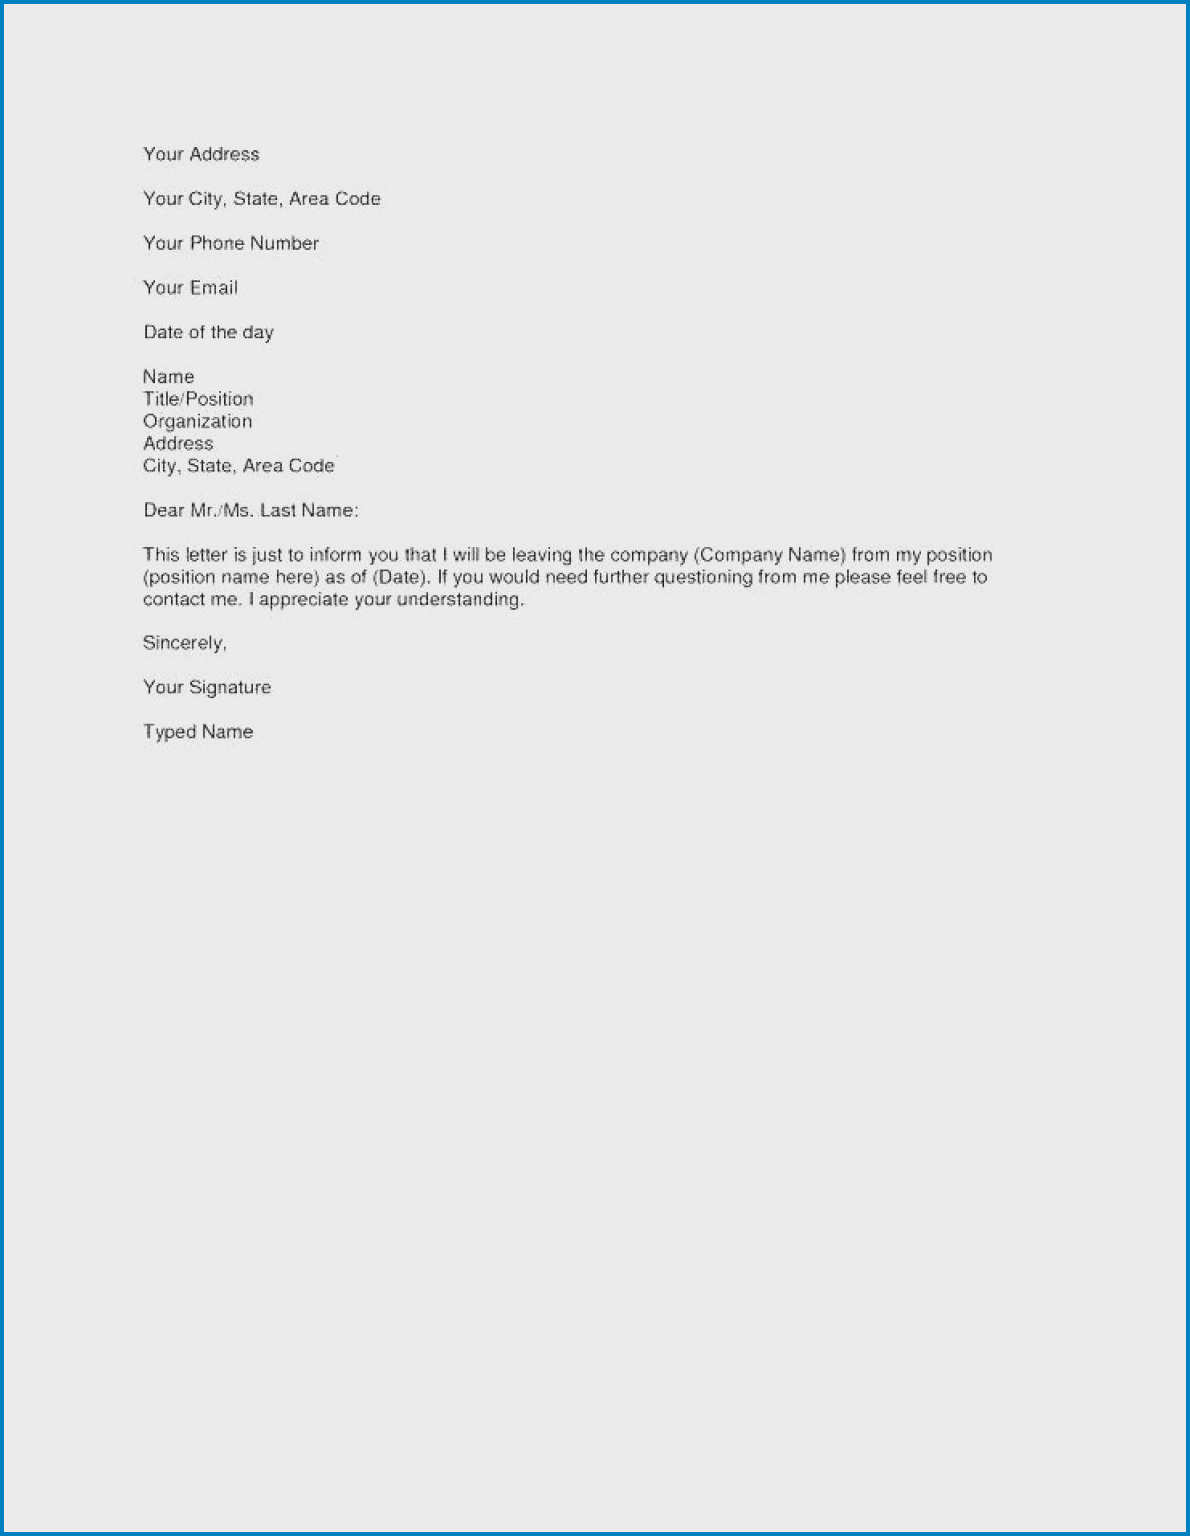 Simple Job Application Email Sample Simple Cover Letter For Job Application Page 1 Line 17qq Com How To Apply For Jobs Via Email Wasain Ajang